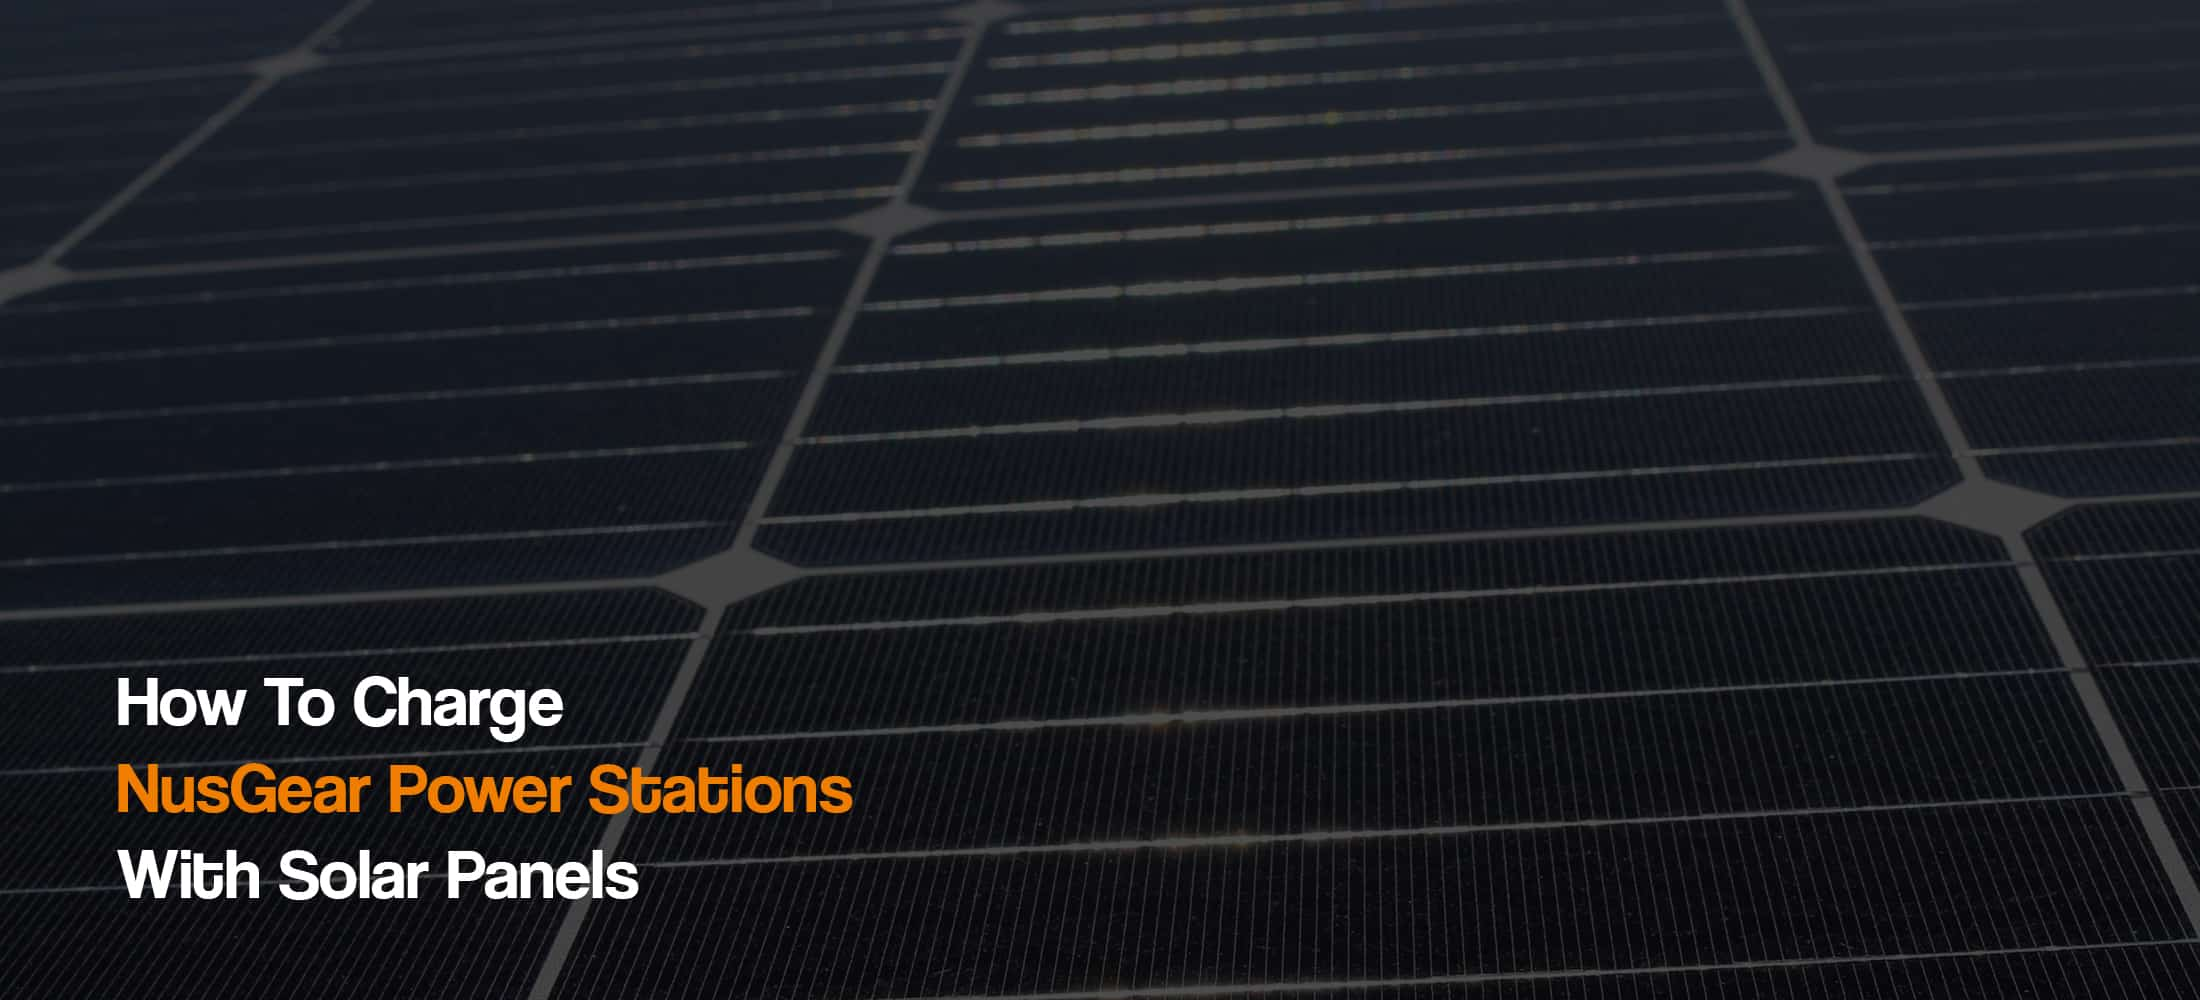 how-to-charge-nusgear-solar-generator-power-station-with-solar-panels-the-solar-addict